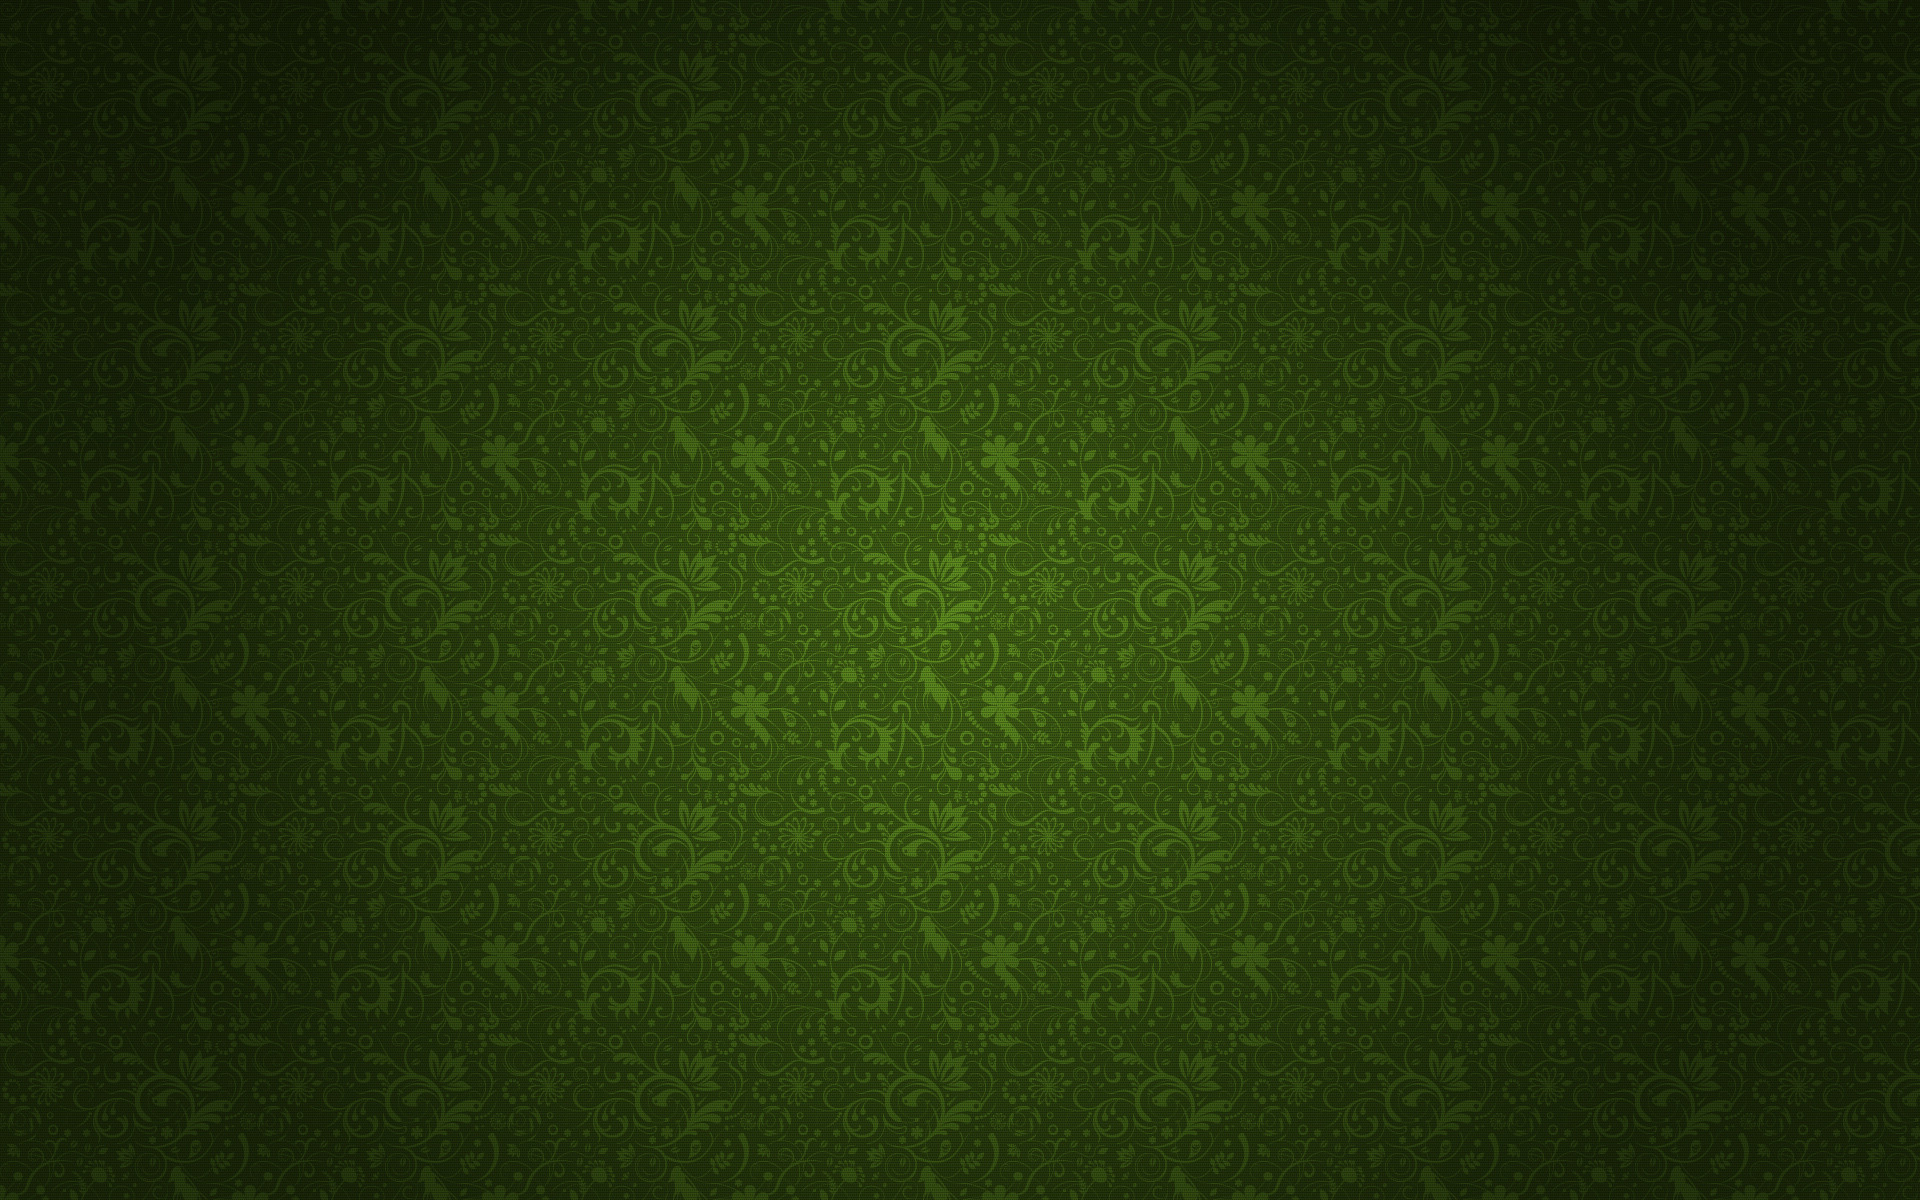 1920x1200 Green Wallpaper 15